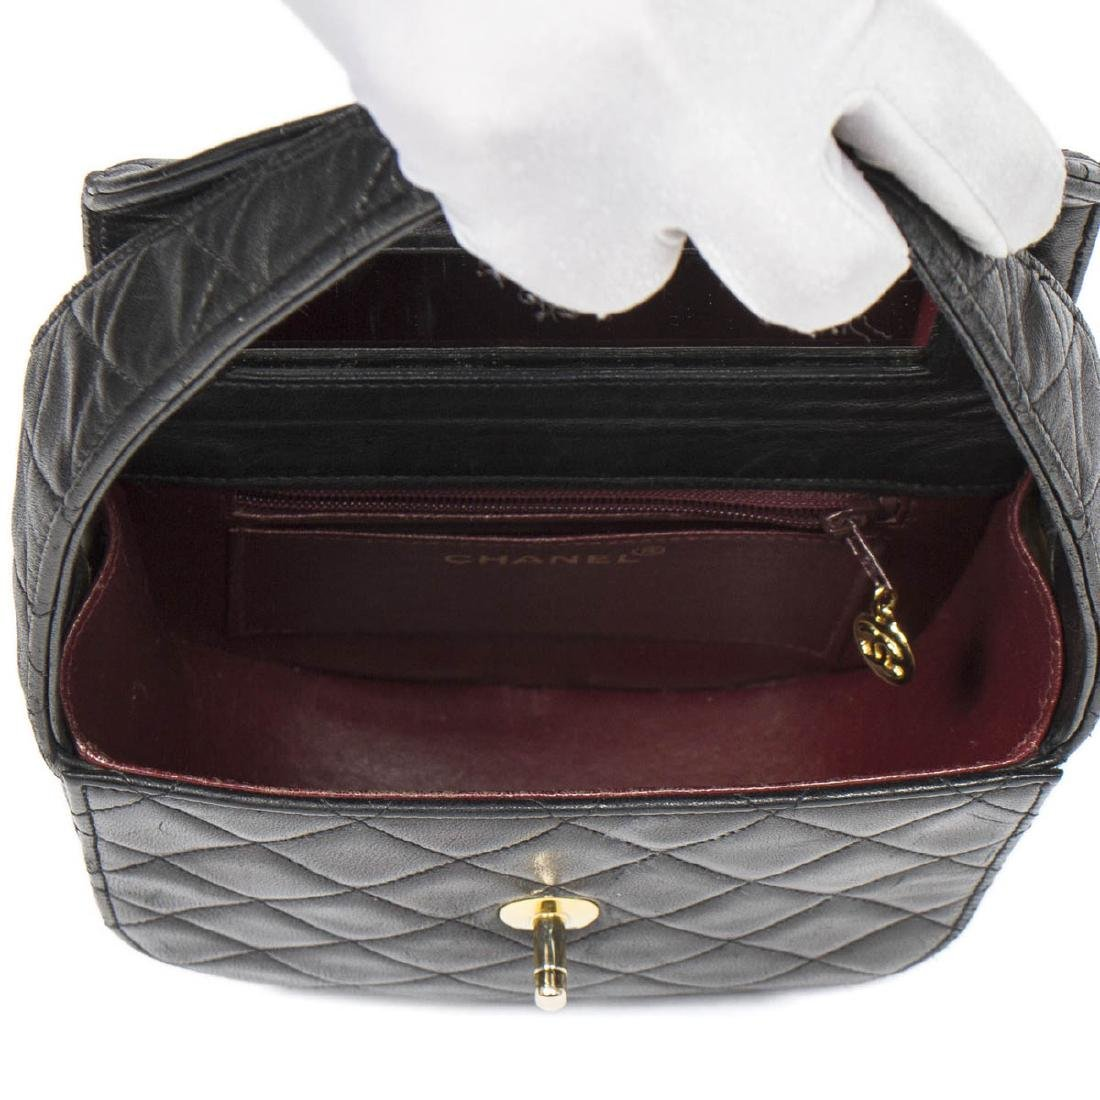 Chanel Make up Hand Bag in Black Quilted Leather - 7